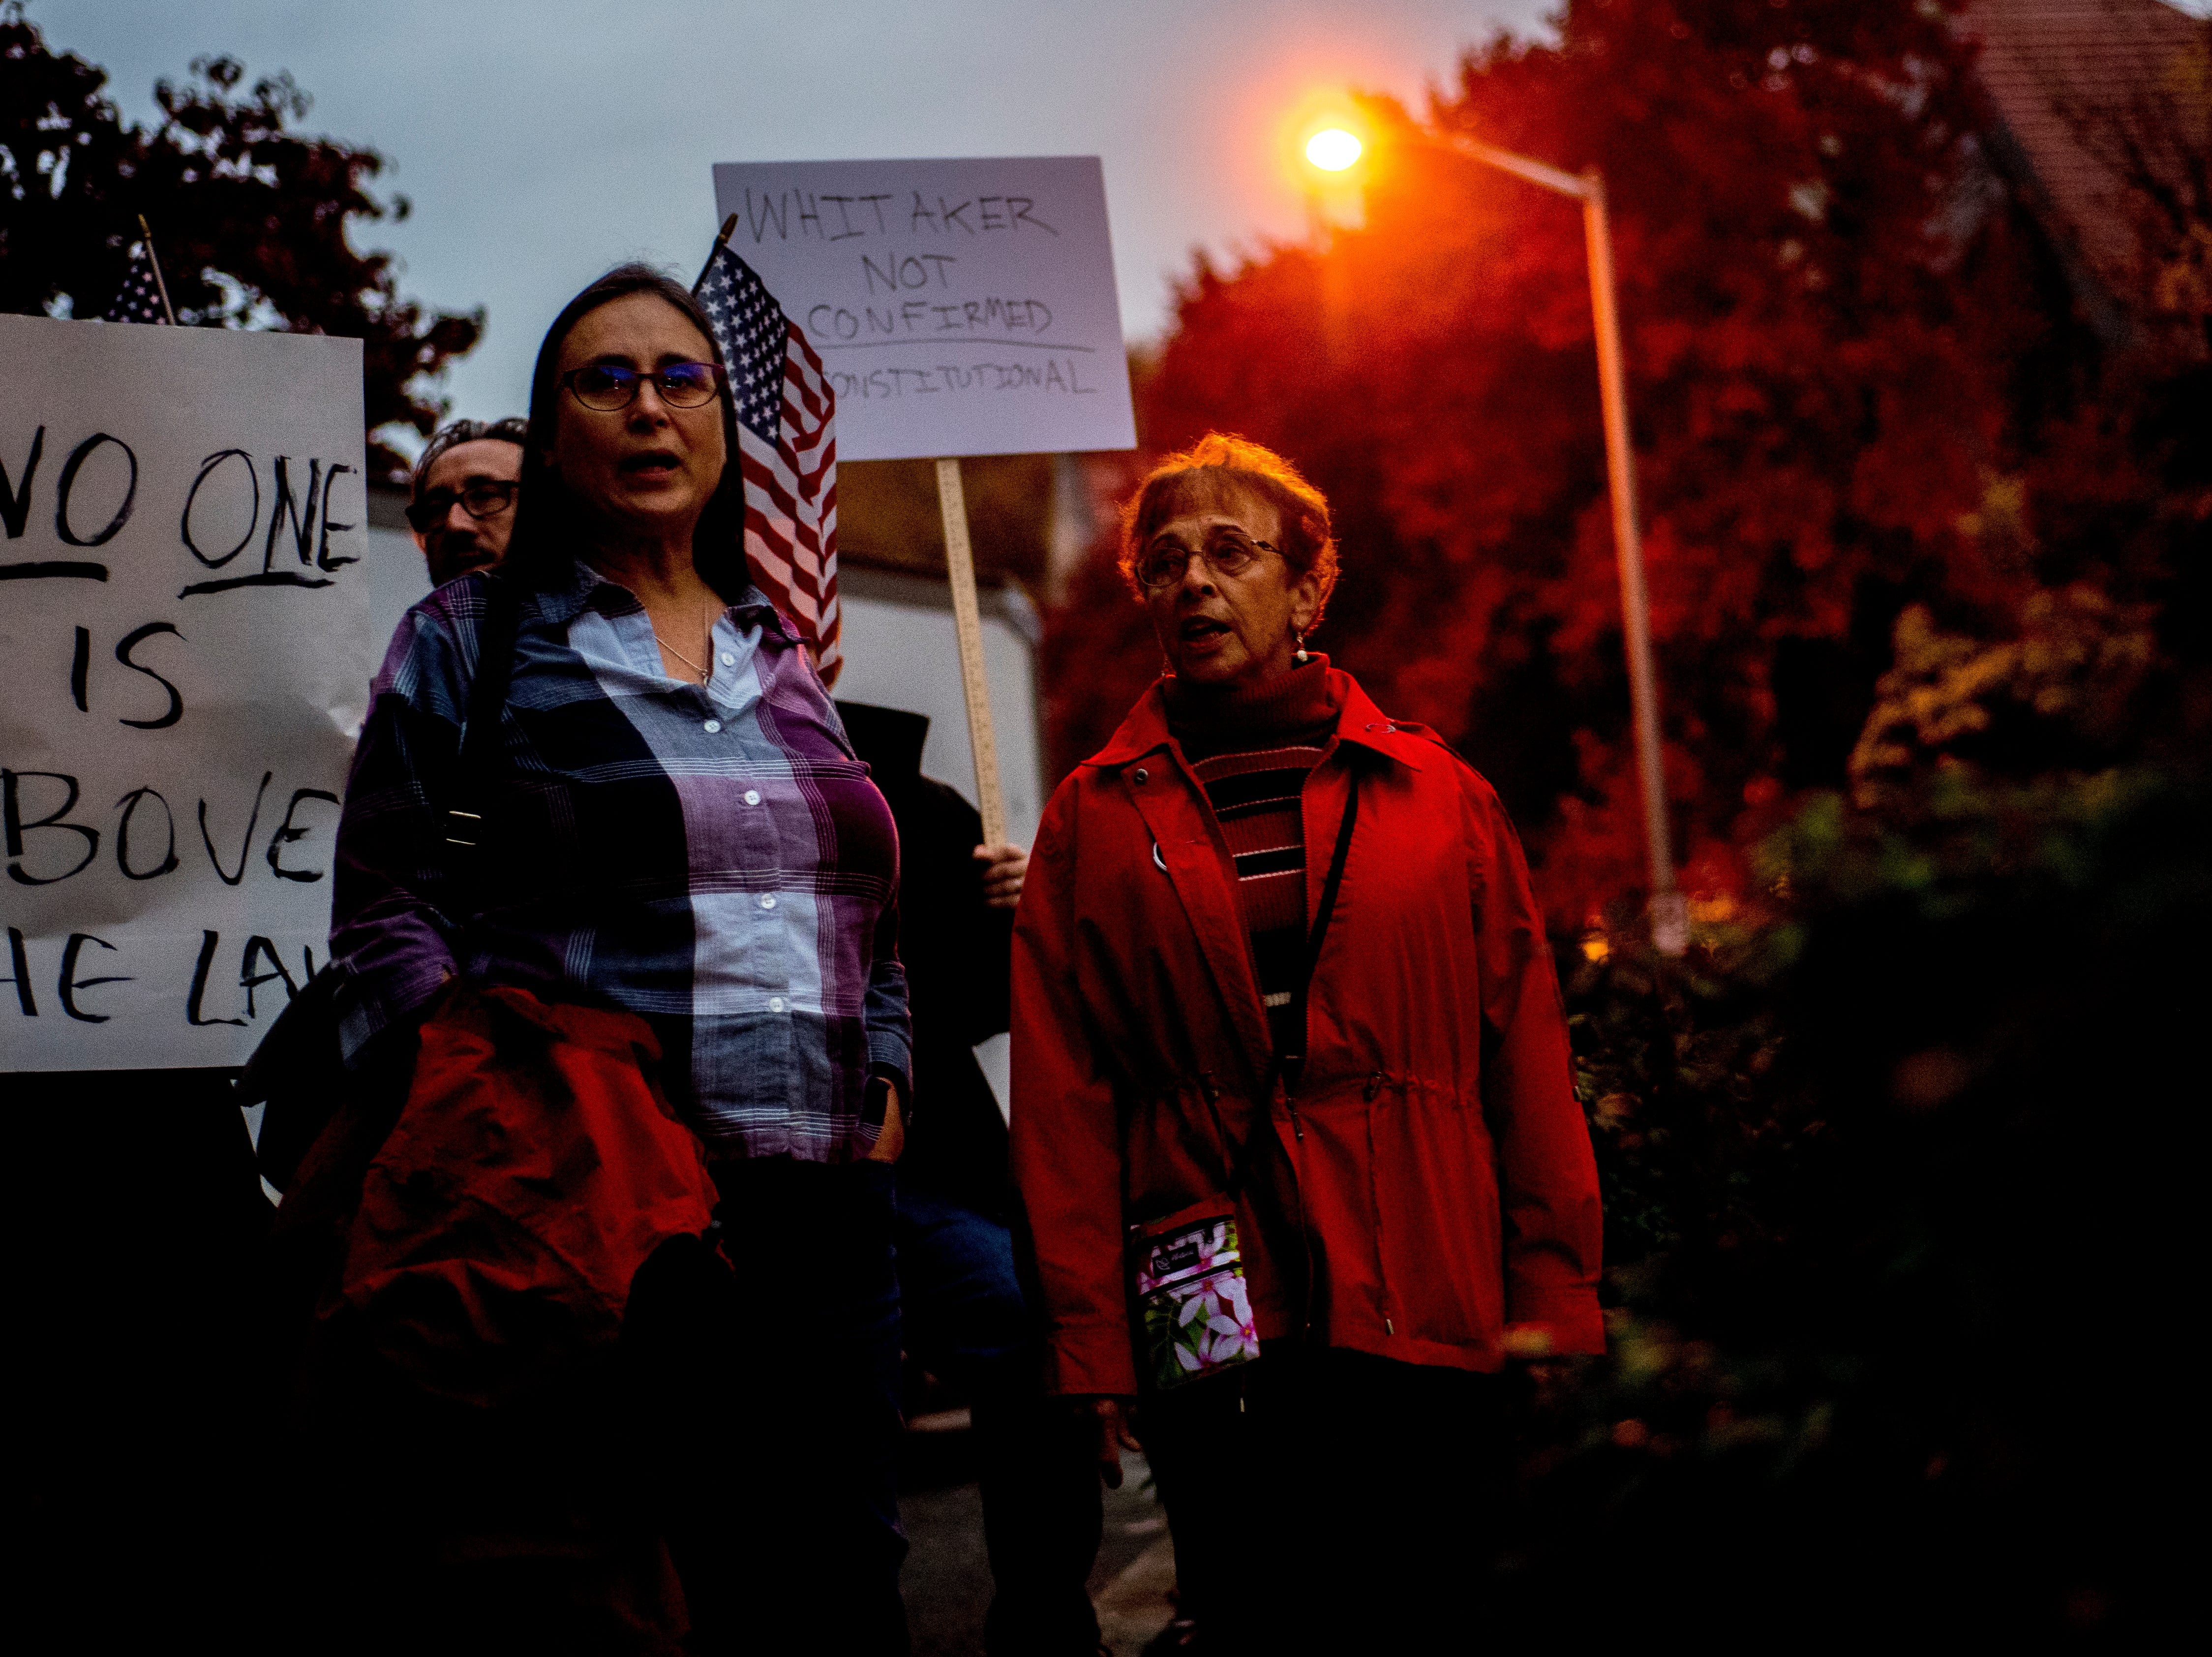 Leah Patterson, visiting from California, left, and Kathy Decker, of Norris, chant during a protest against the firing of United States Attorney General Jeff Sessions outside of the Federal Courthouse in Knoxville, Tennessee on Thursday, November 8, 2018.